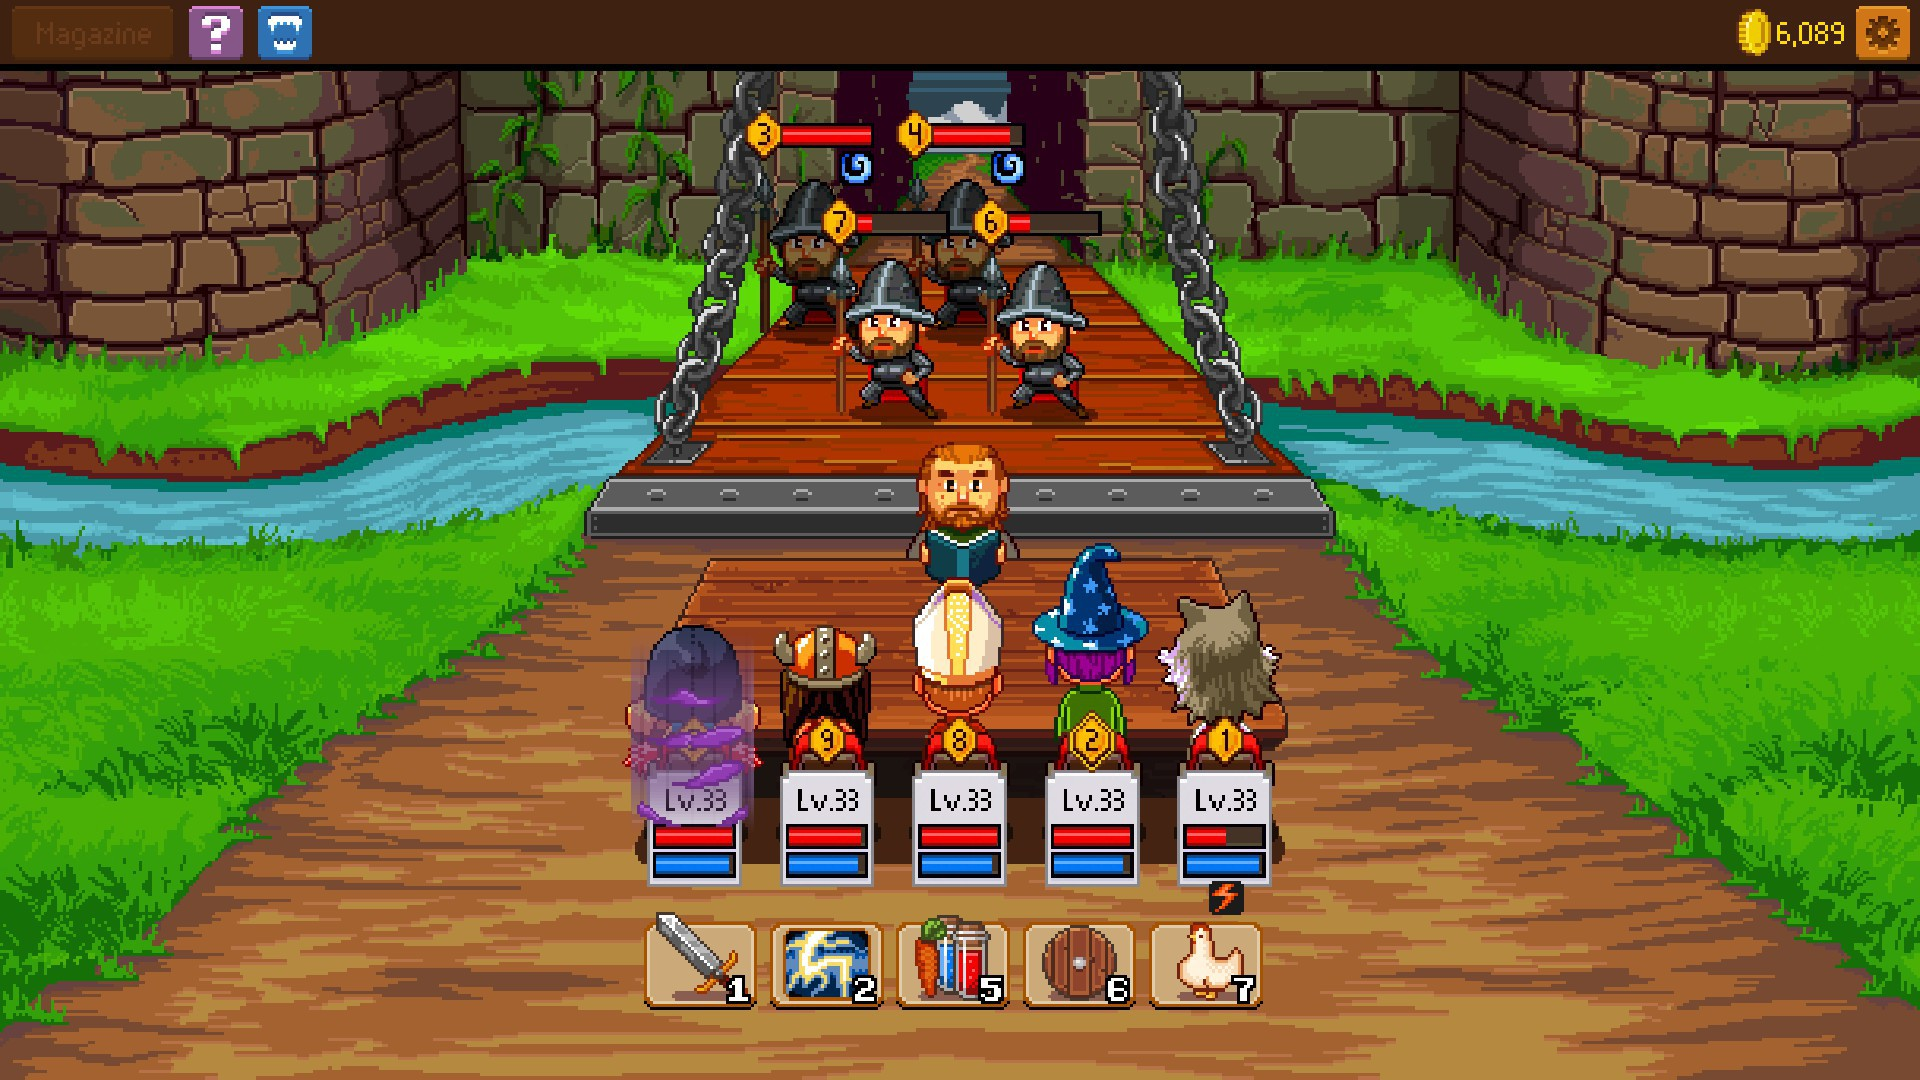 knights of pen and paper 2 here be dragons